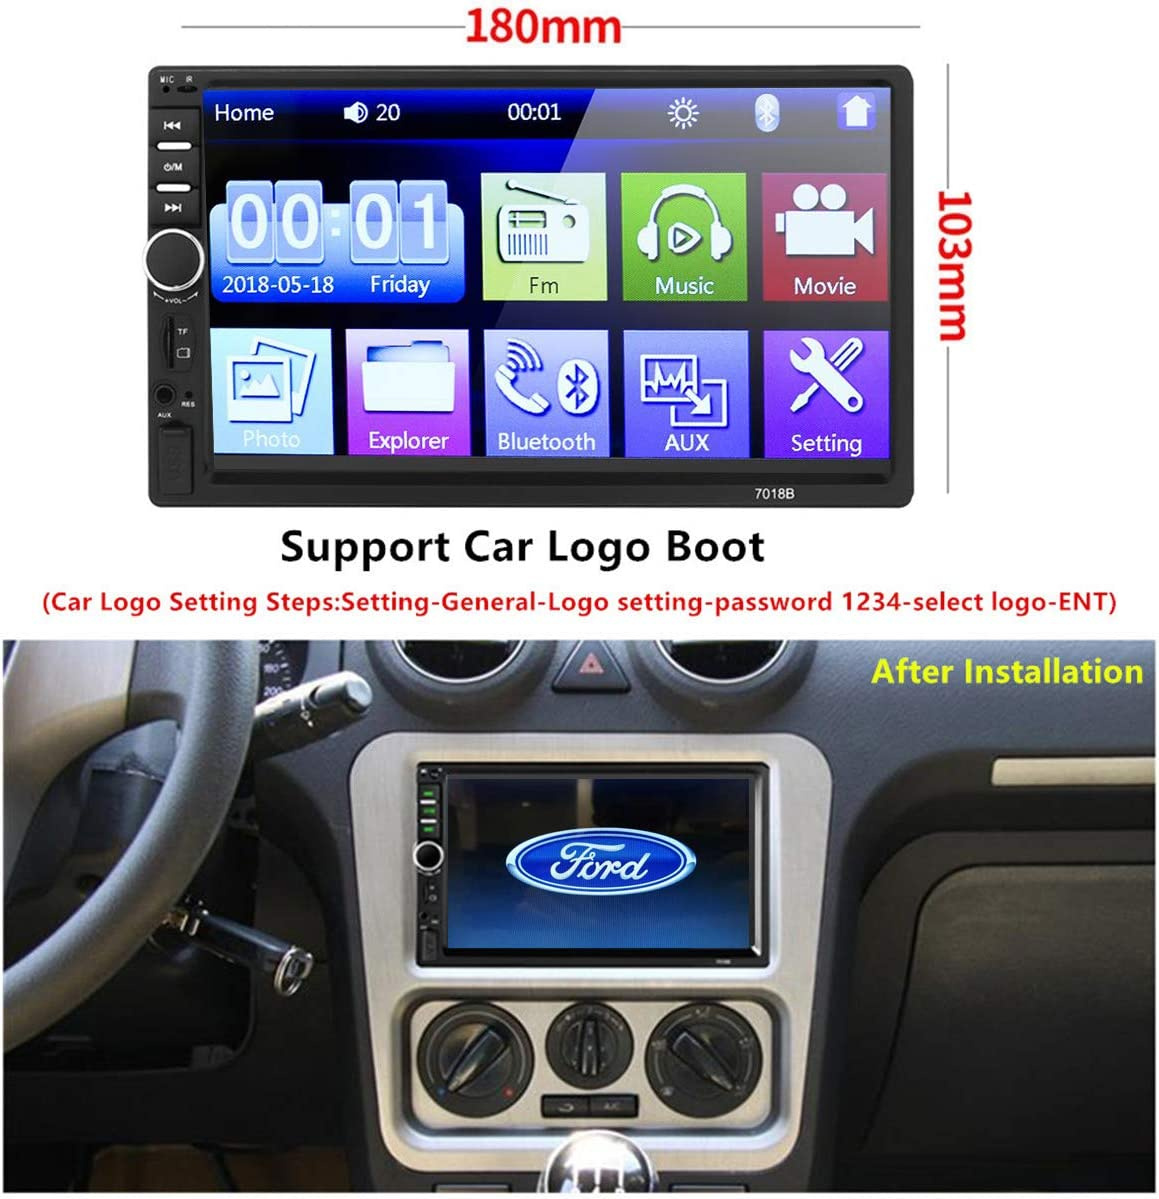 Car Stereo 2 Din,7 inch Touch Screen MP5 //MP4//MP3 Multimedia Player,Bluetooth Audio,Car Stereo Receivers,FM Radio,USB//SD//AUX Input,Mirror Link,Support Steering Wheel Remote Control,Rear View Camera